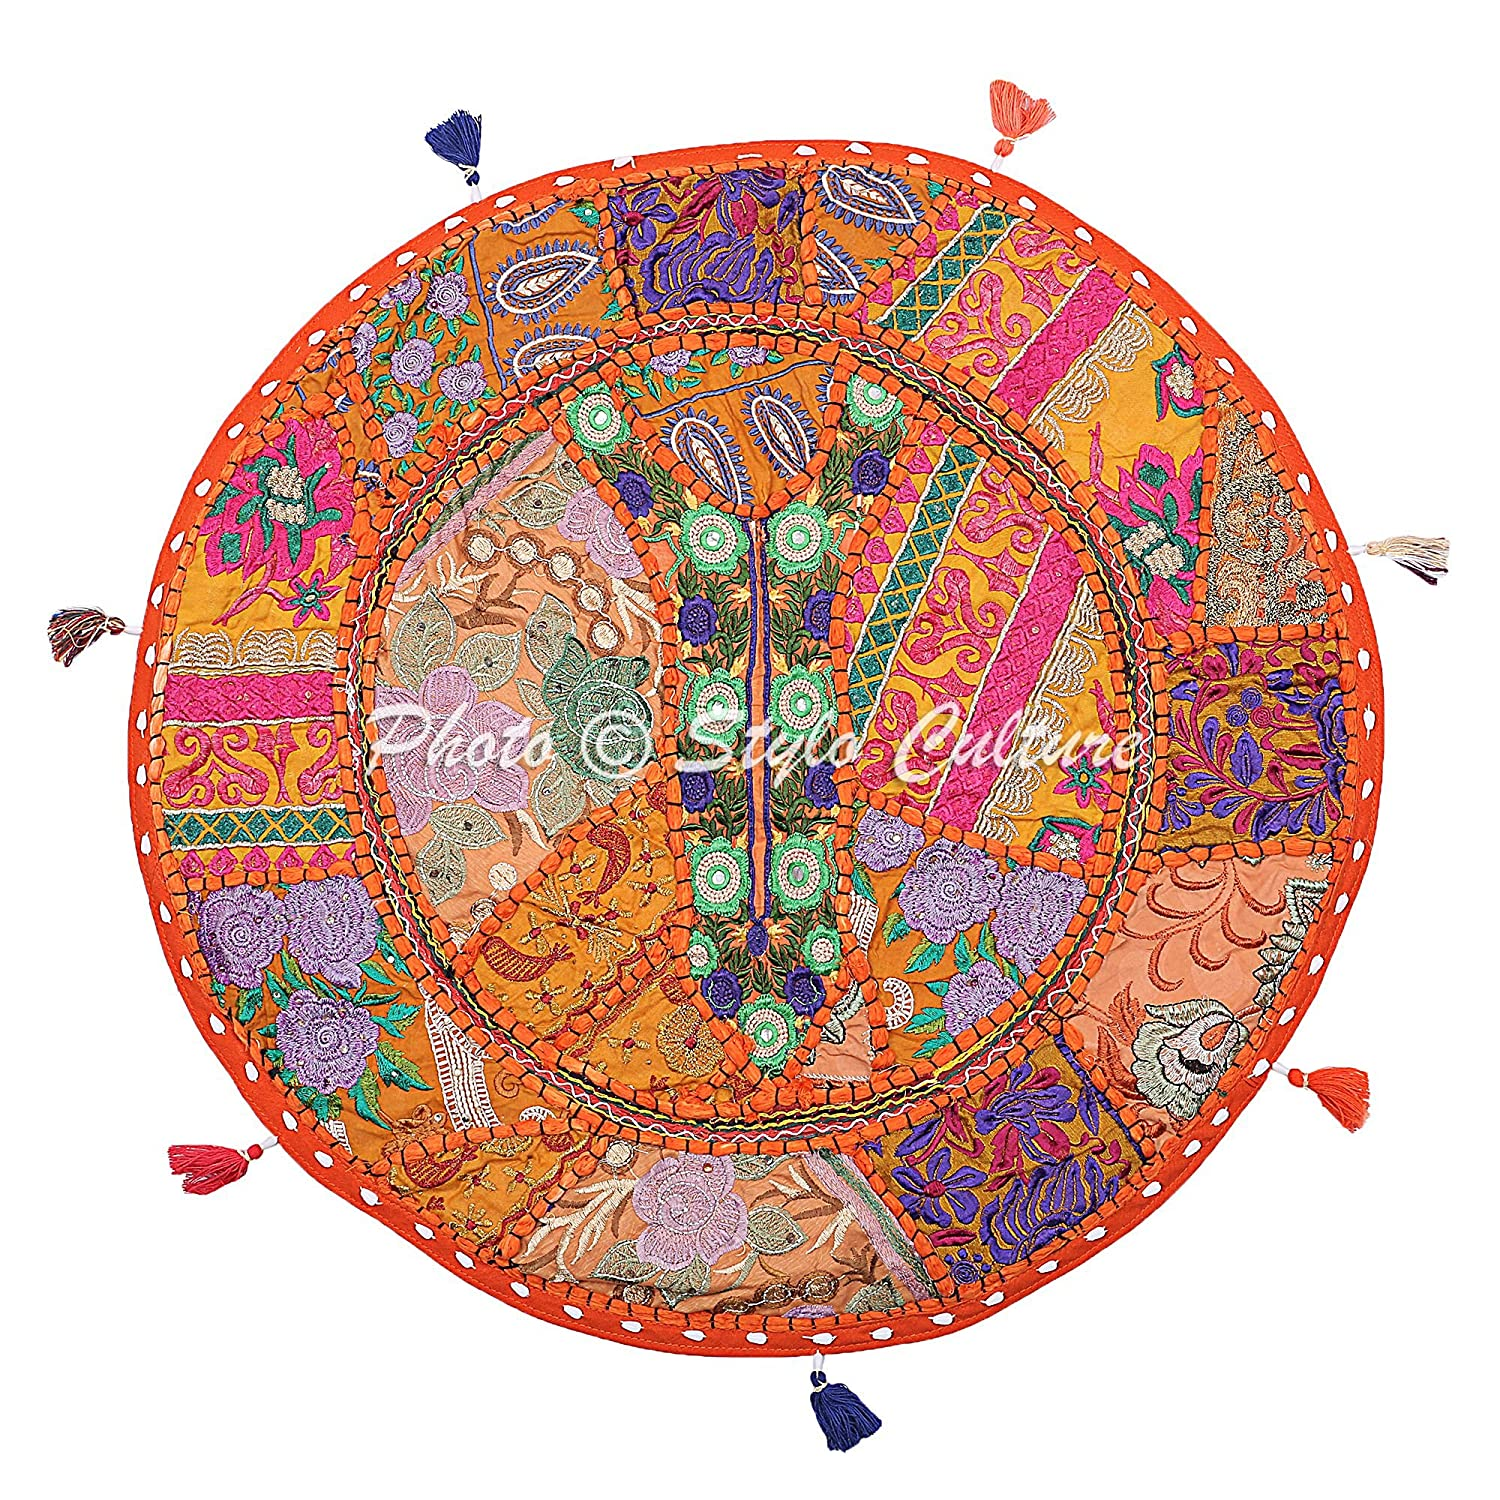 Stylo Culture Cotton Indian Floor Cushion Cover Throw Vintage Embroidered Patchwork Indian Floor Pillow Orange 22' Seat Pouf Cover SC-FCUSH00019